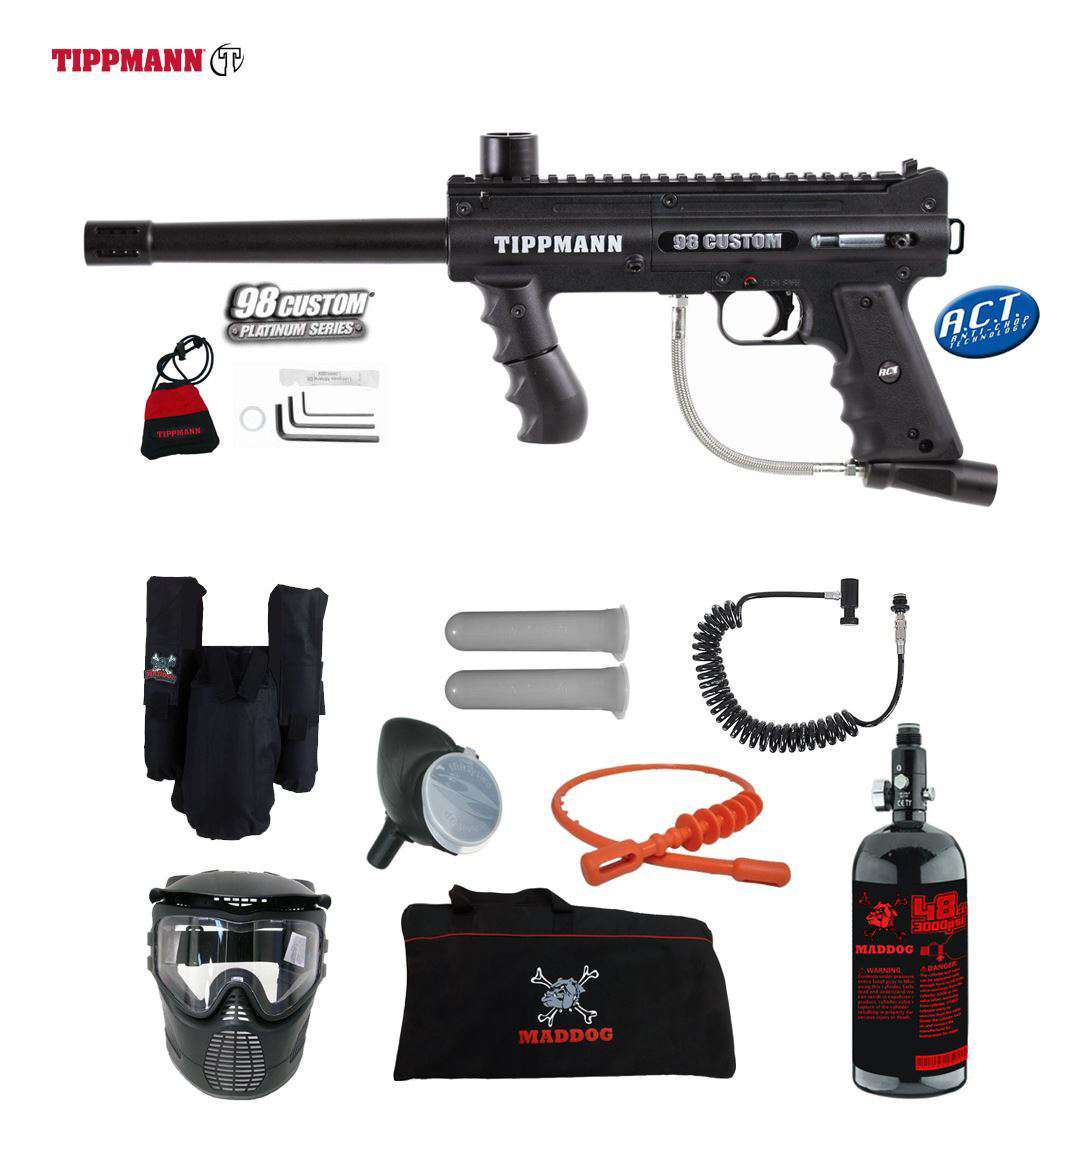 Tippmann 98 Custom Platinum Series Private HPA Paintball Gun Package